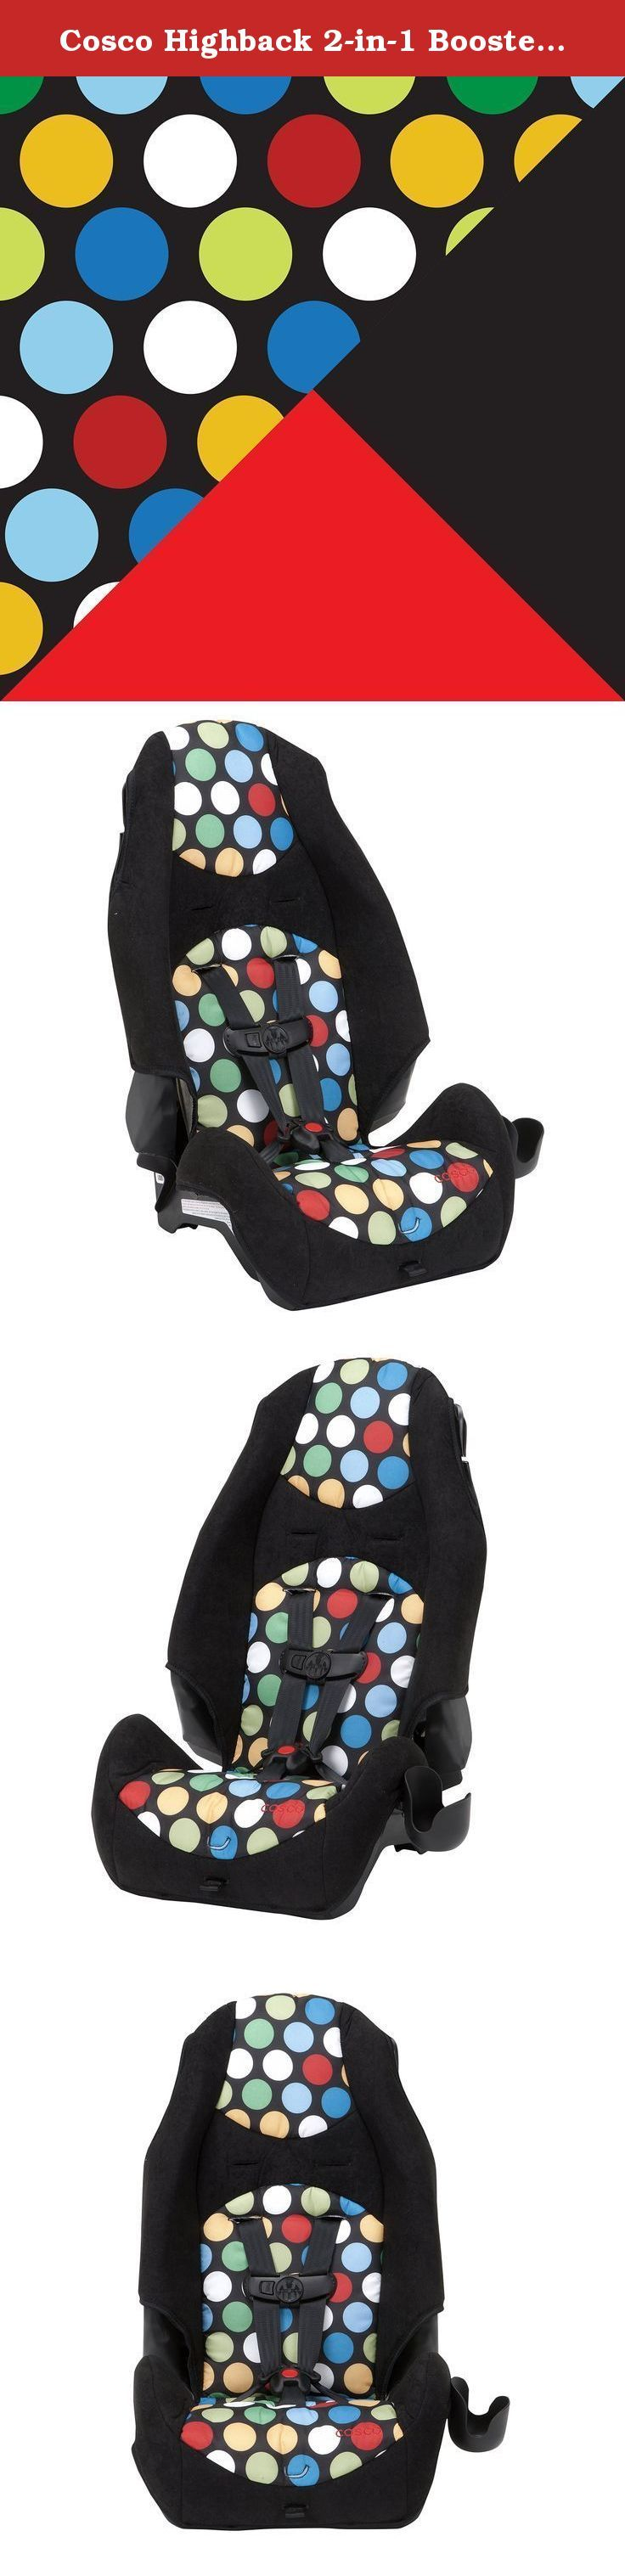 Cosco Highback 2-in-1 Booster Car Seat, Broadway Dots. Get a car seat that lasts! 2 car seats in 1, the Cosco Highback 2-in-1 Booster Car Seat takes your child through two different stages for extended value. Use the 5-point harness for smaller kids and then convert to a belt-positioning booster for bigger kids. The Highback 2-in-1 is LATCH equipped when you use the five-point harness and adjusts from the front, making it easier to get a snug fit. When your child gets bigger, remove the...